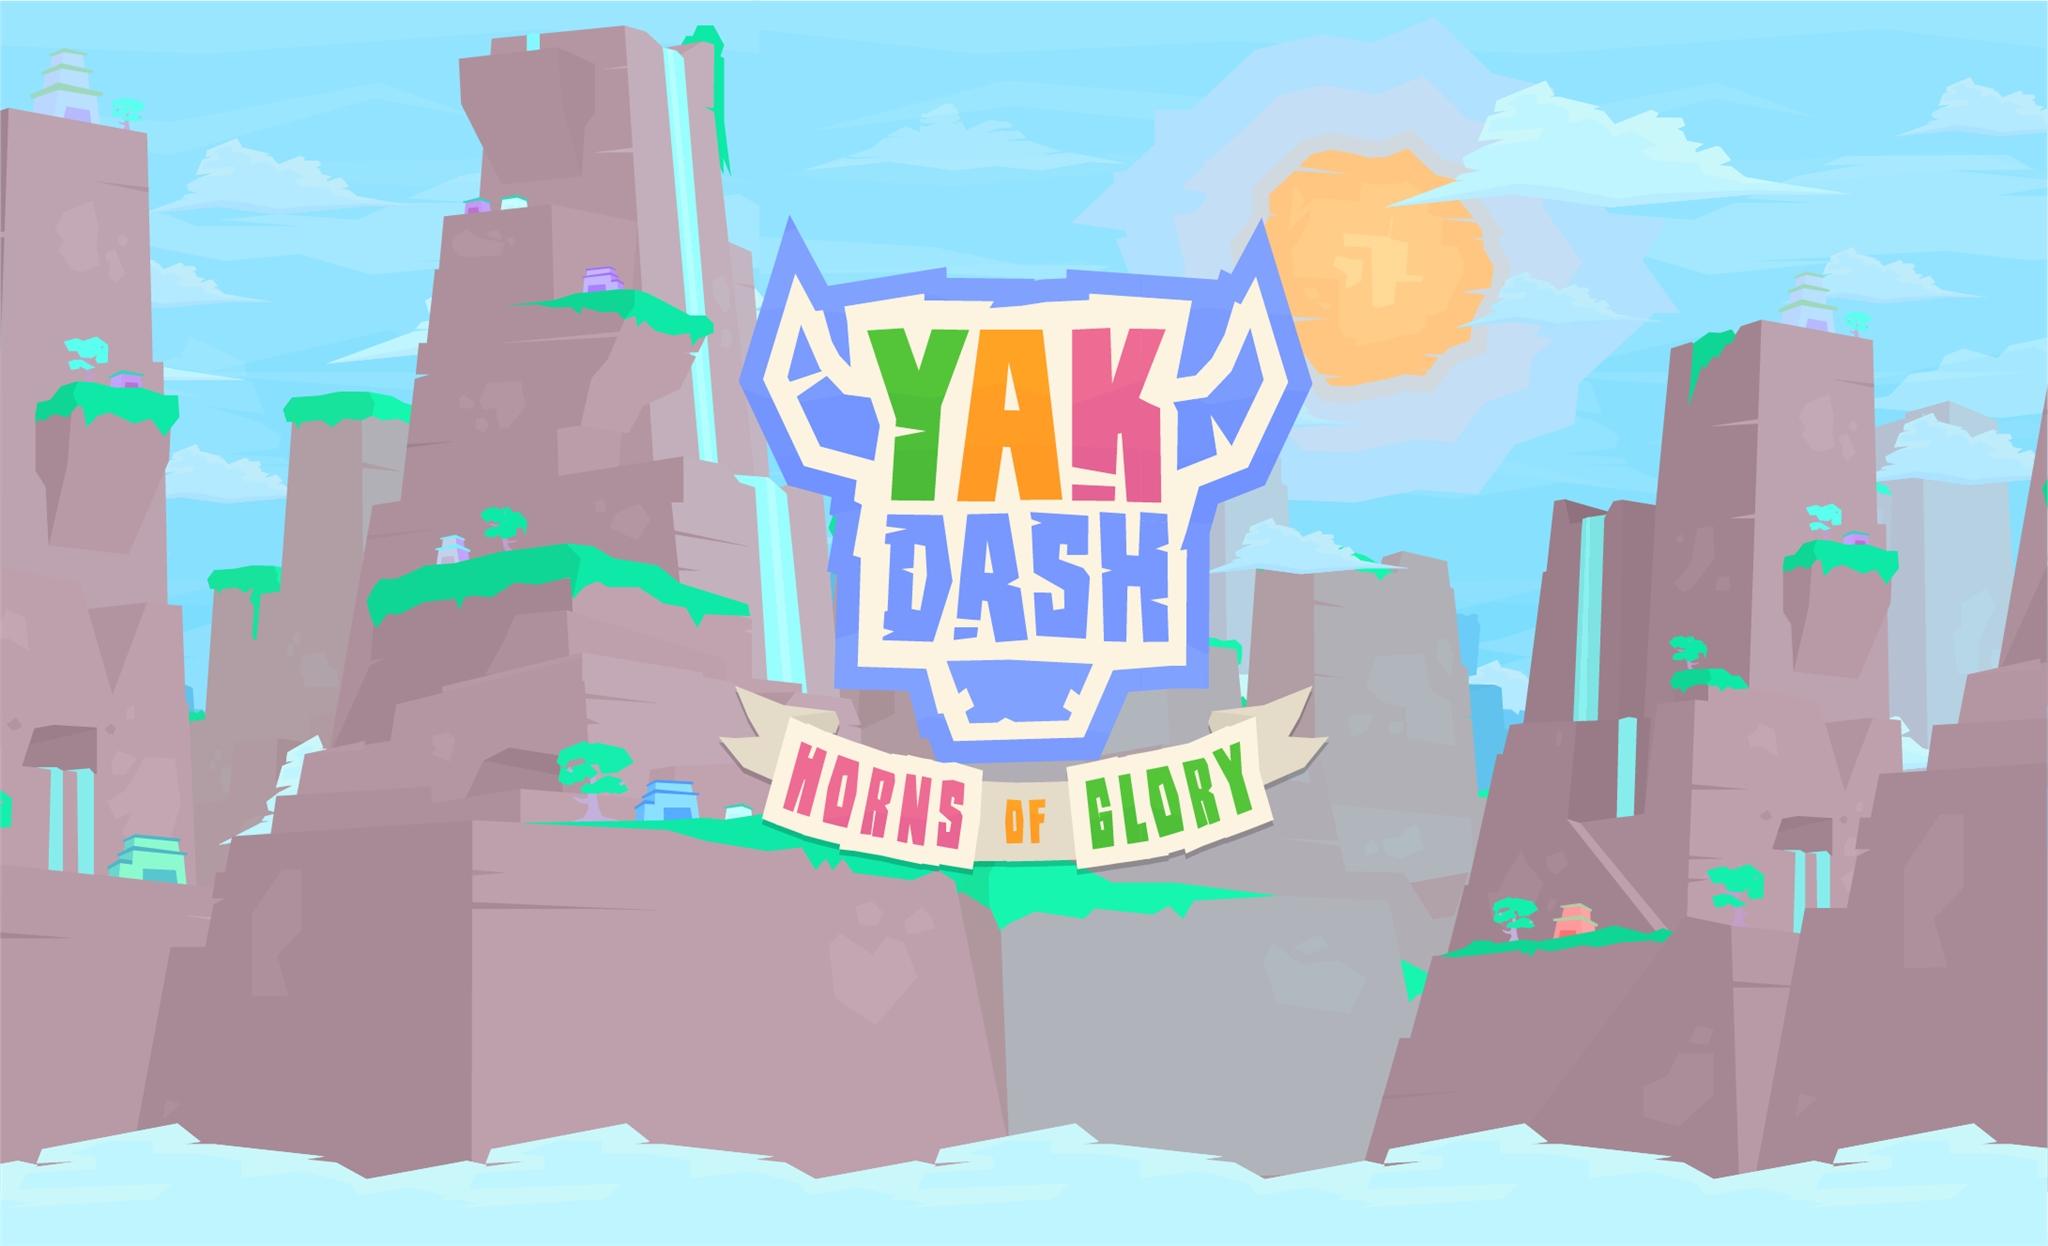 Yak Dash (Horns of Glory) icon